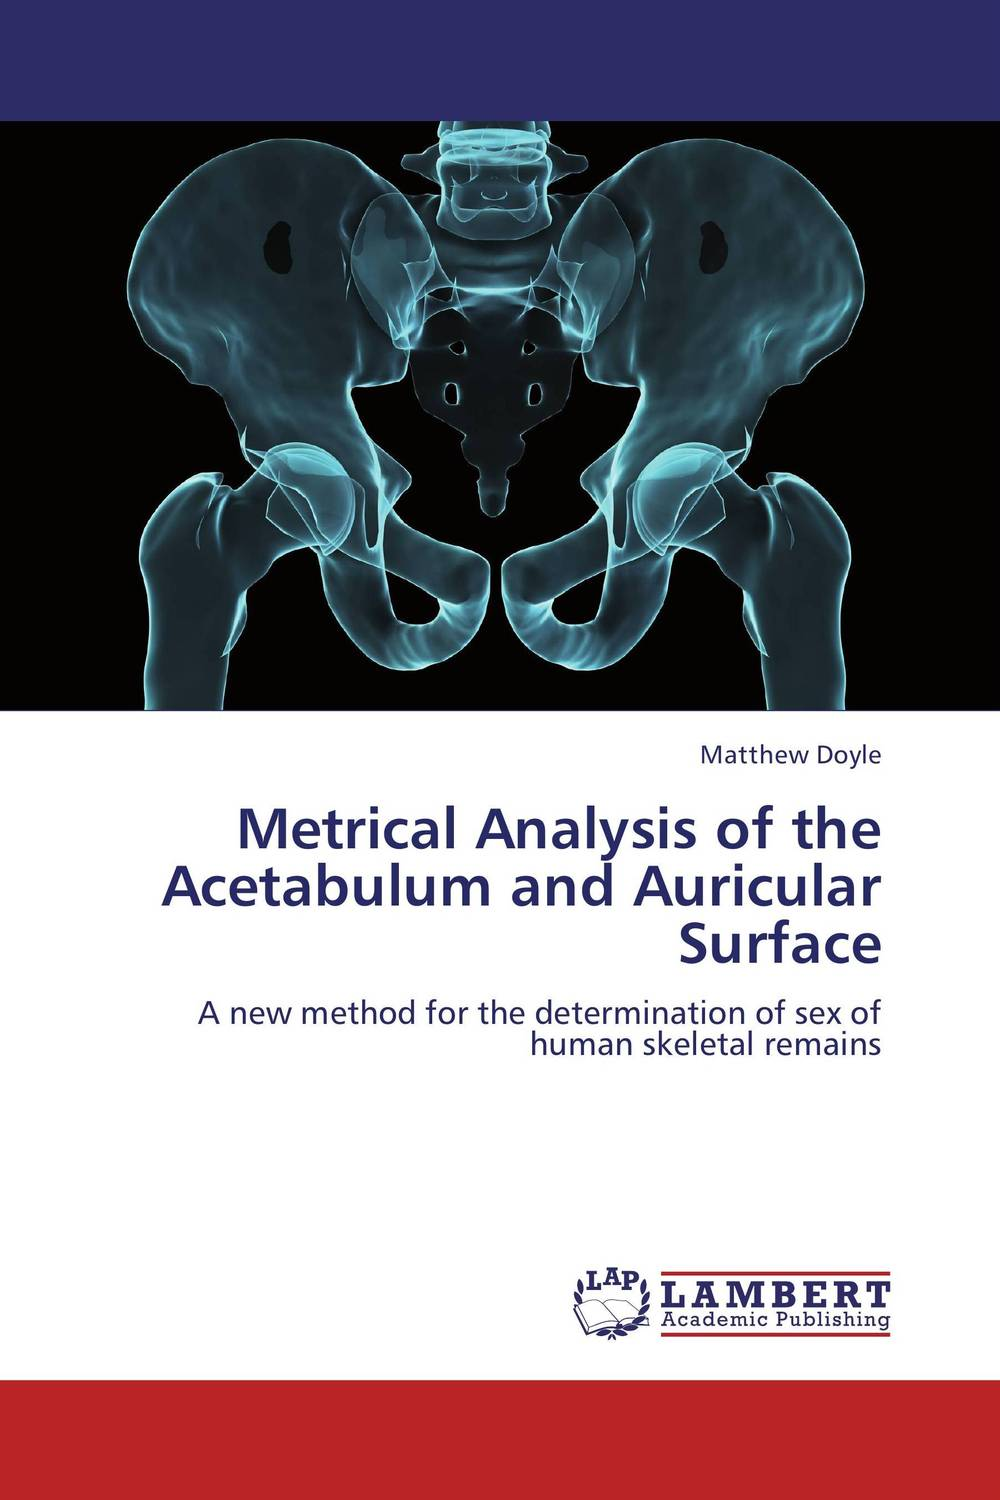 Metrical Analysis of the Acetabulum and Auricular Surface locations